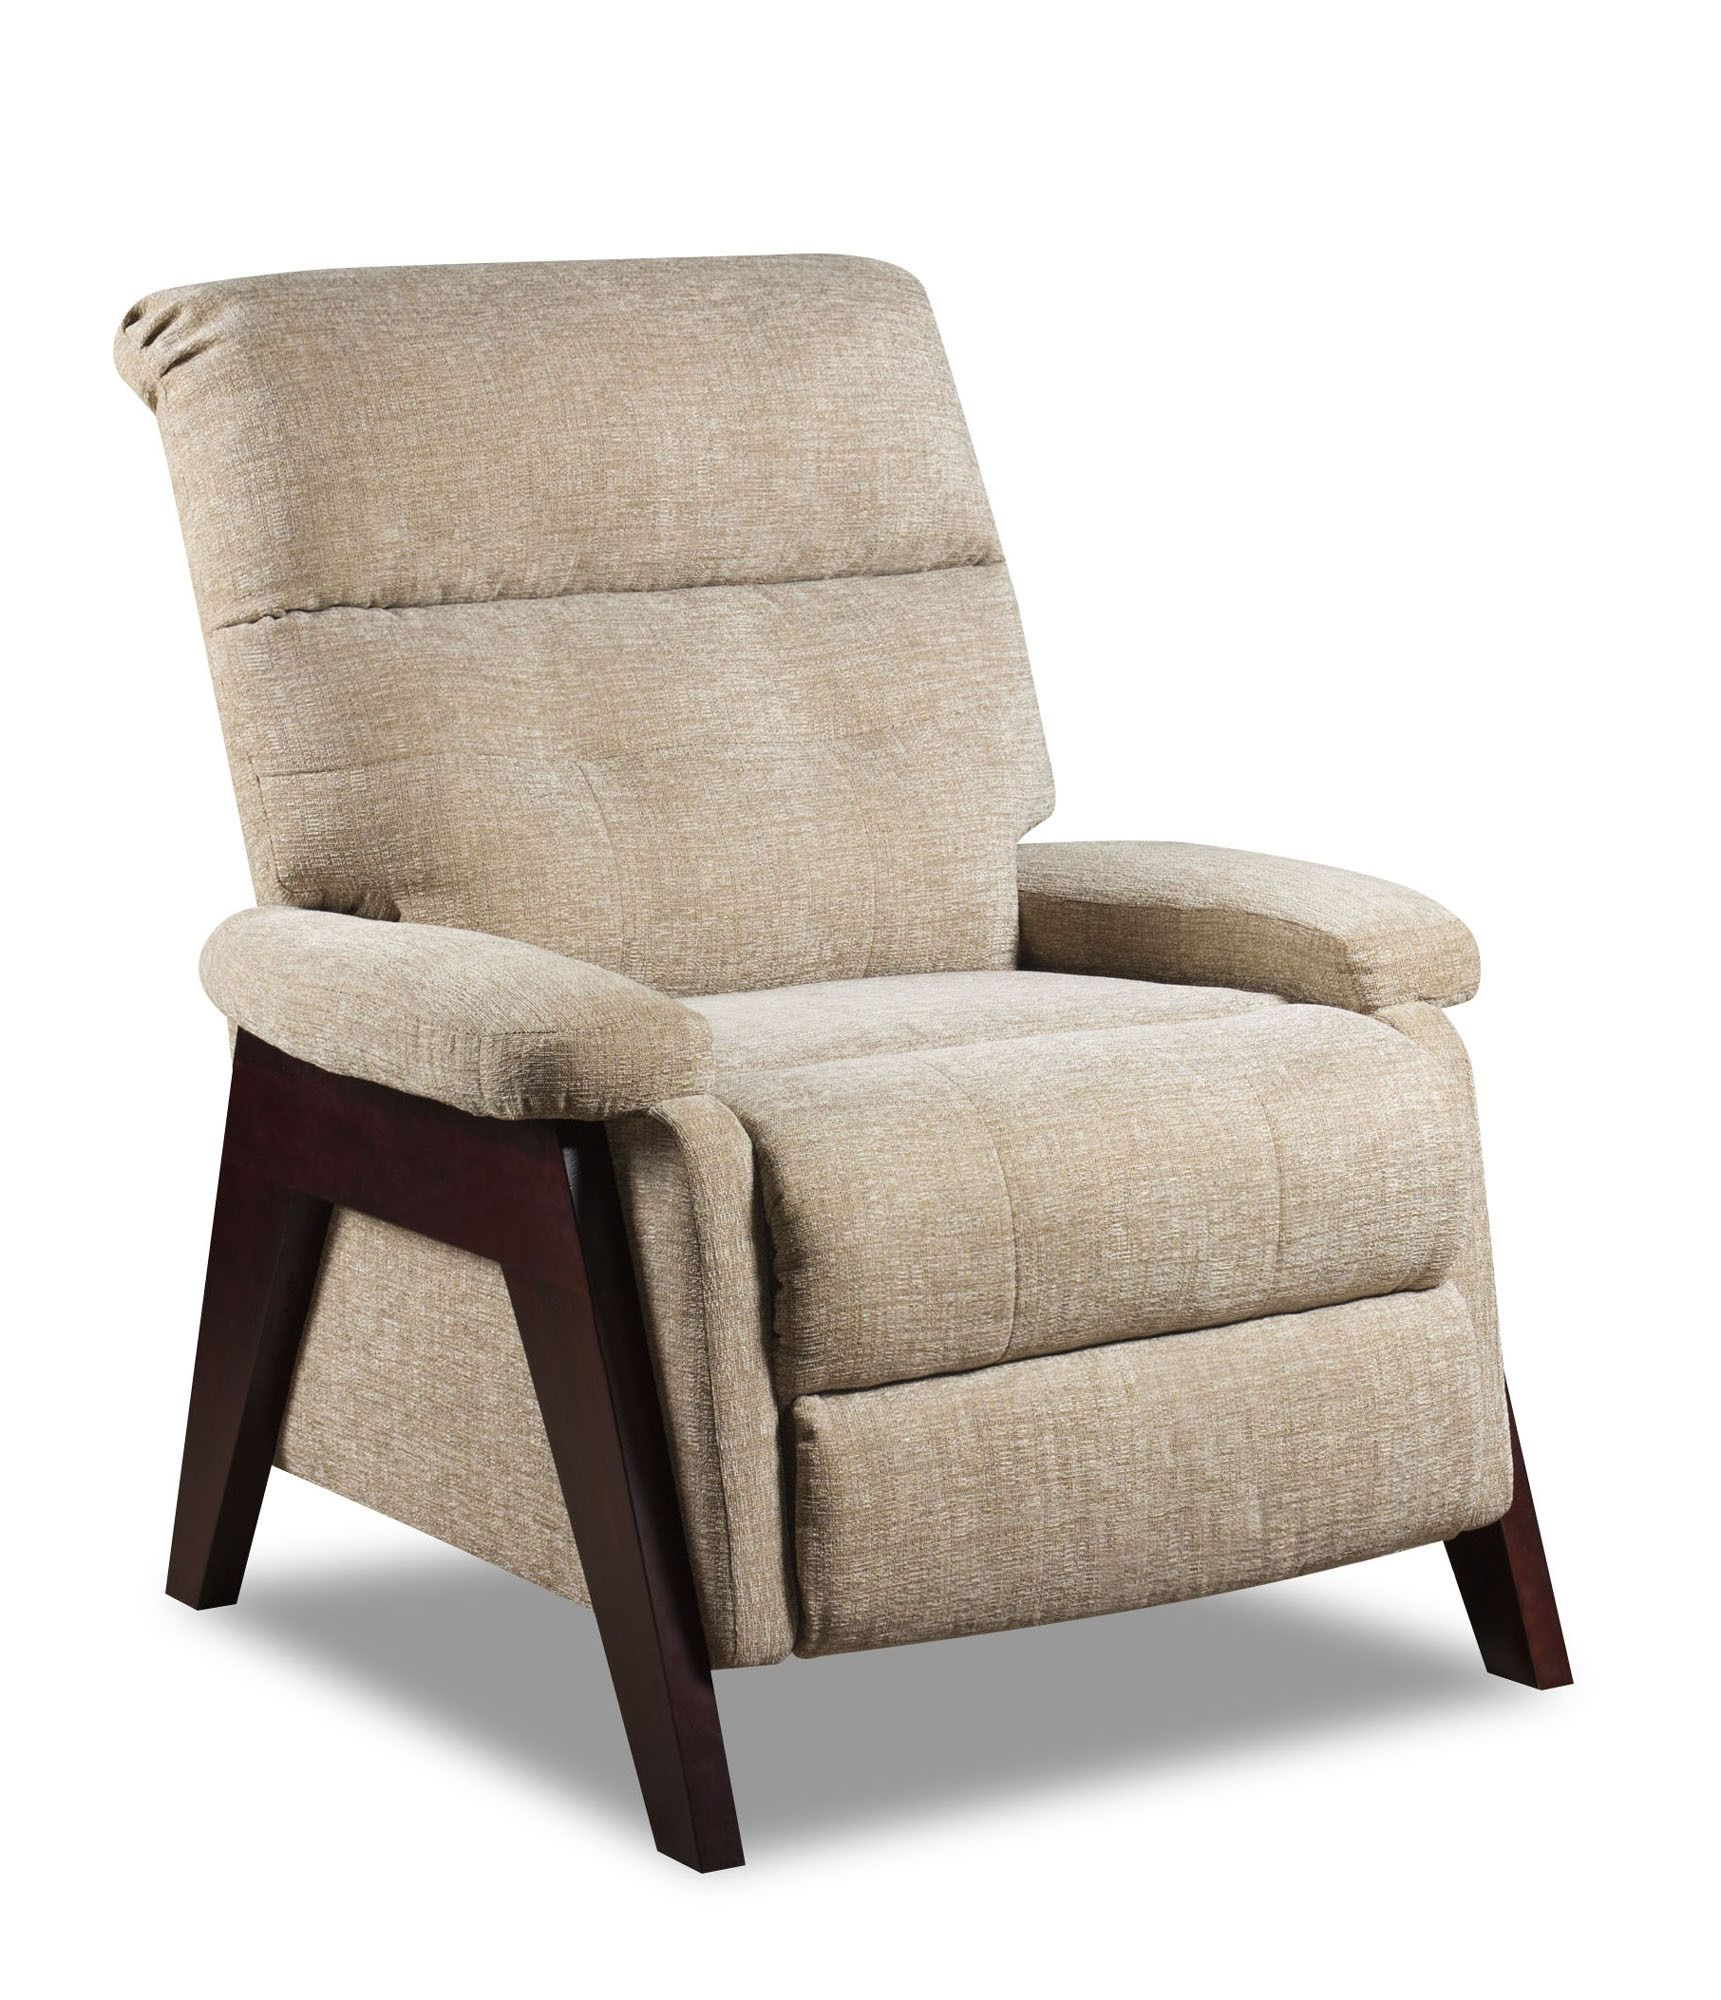 Winwood High Leg 3 Way Recliner by Southern Motion Furniture